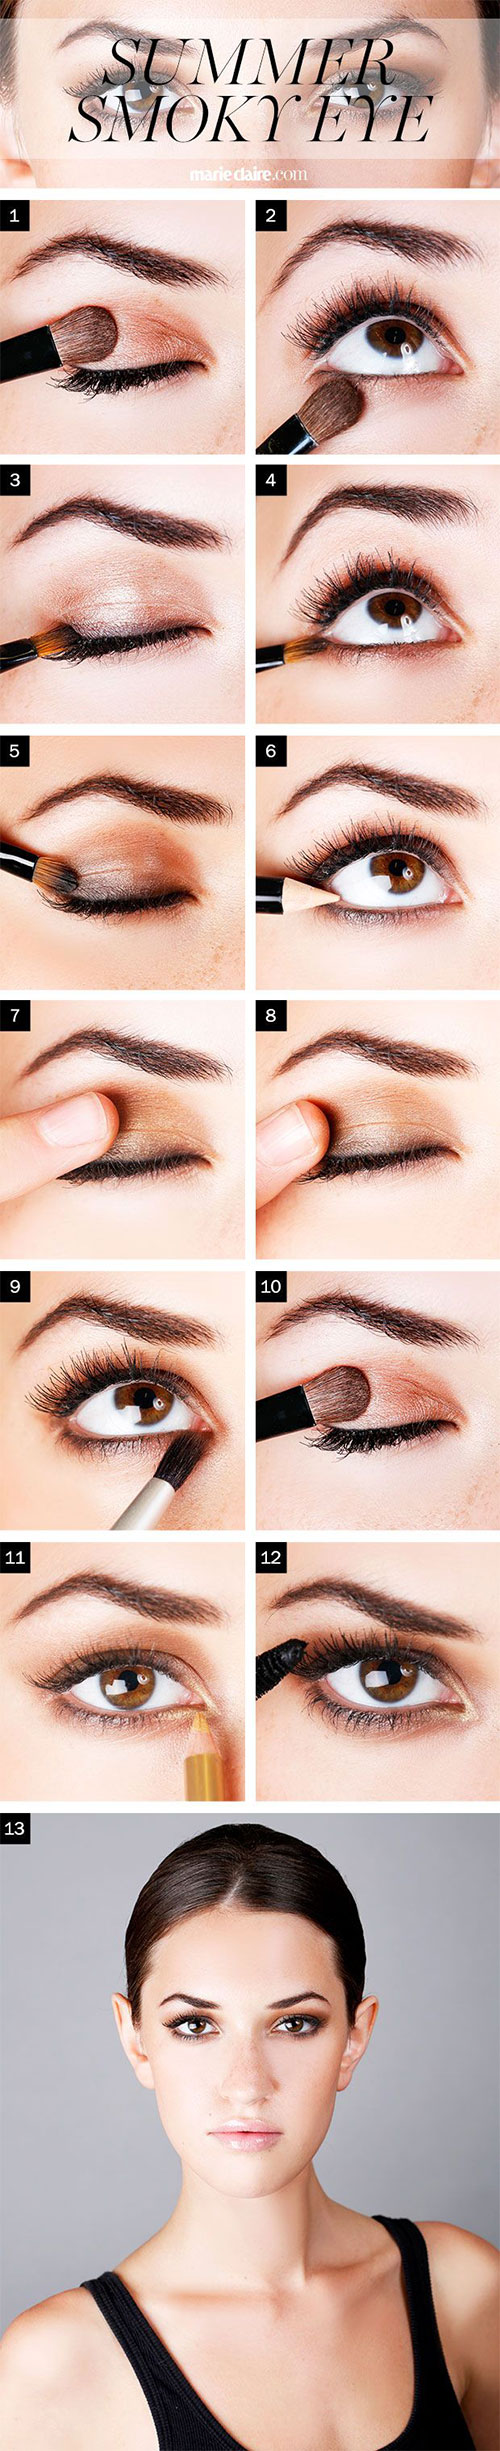 12-Easy-Summer-Eye-Make-Up-Tutorials-For-Beginners-Learners-2015-2